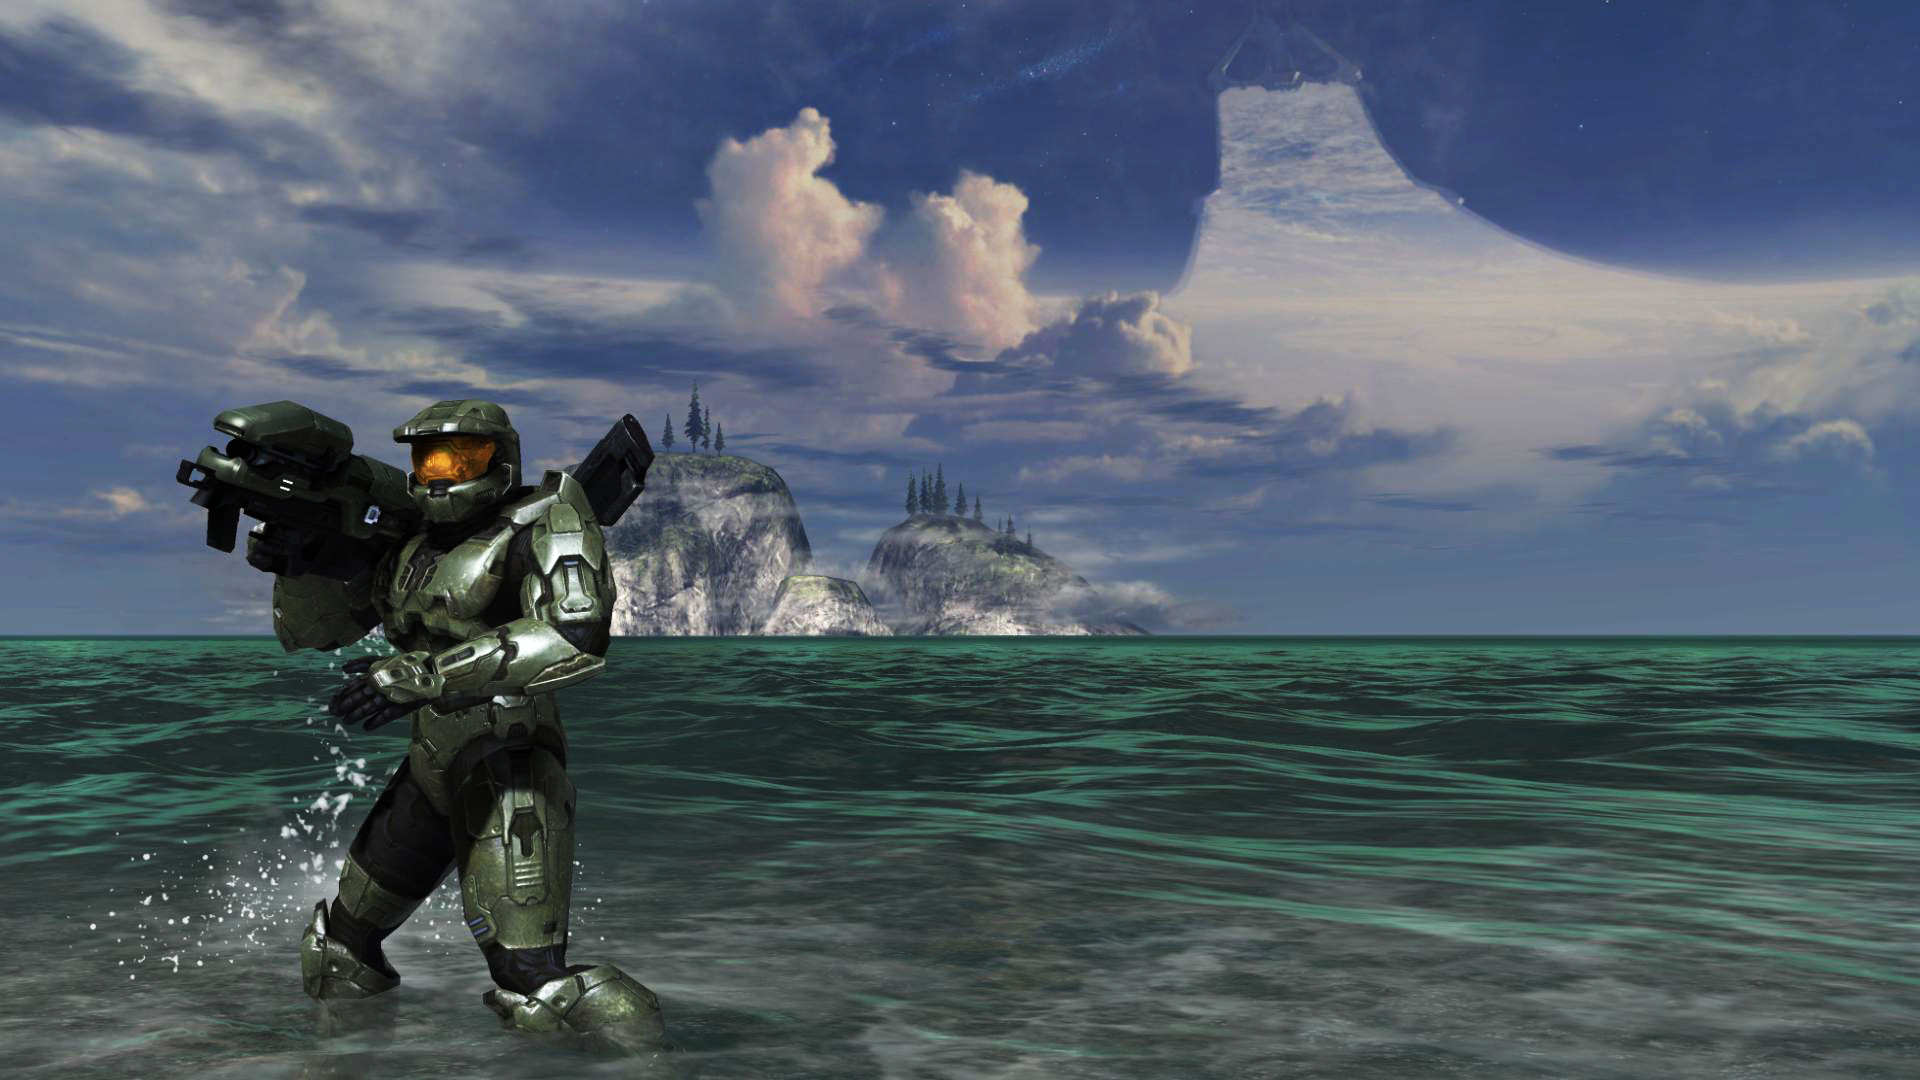 Res: 1920x1080, ... Master Chief - Halo 3 by Hischar